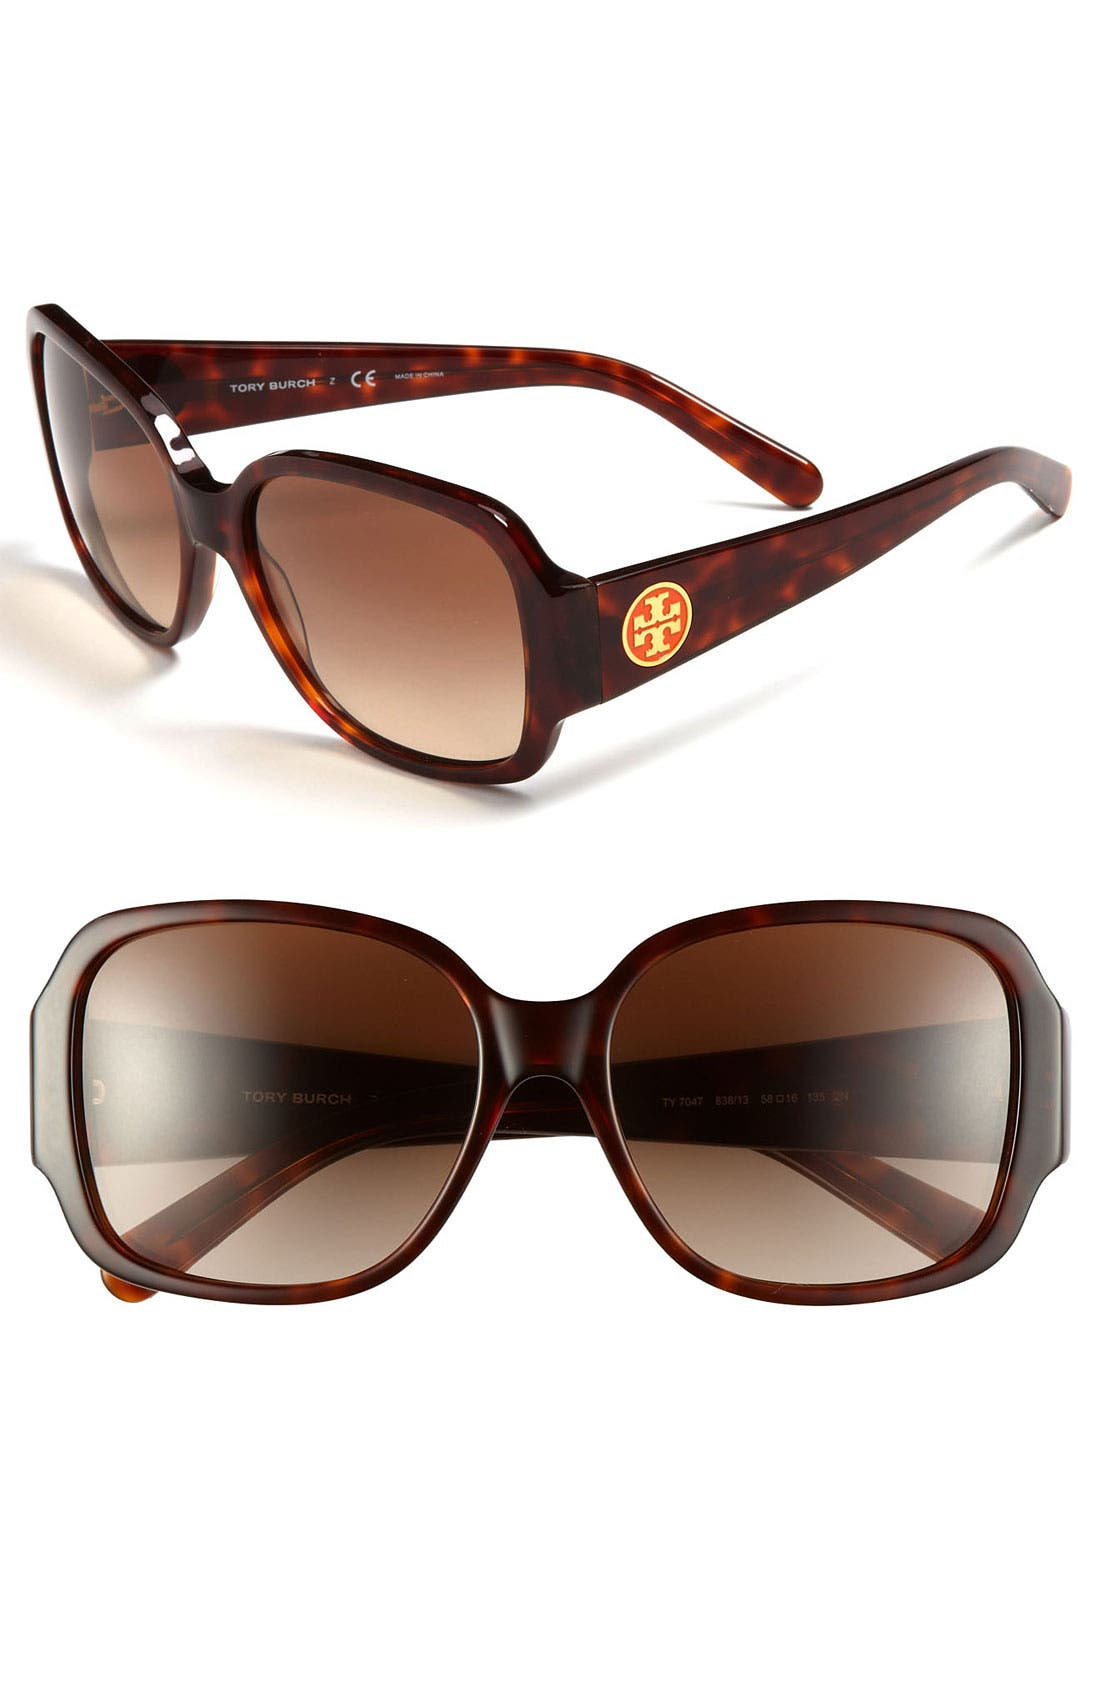 Main Image - Tory Burch 'Glam' 58mm Sunglasses